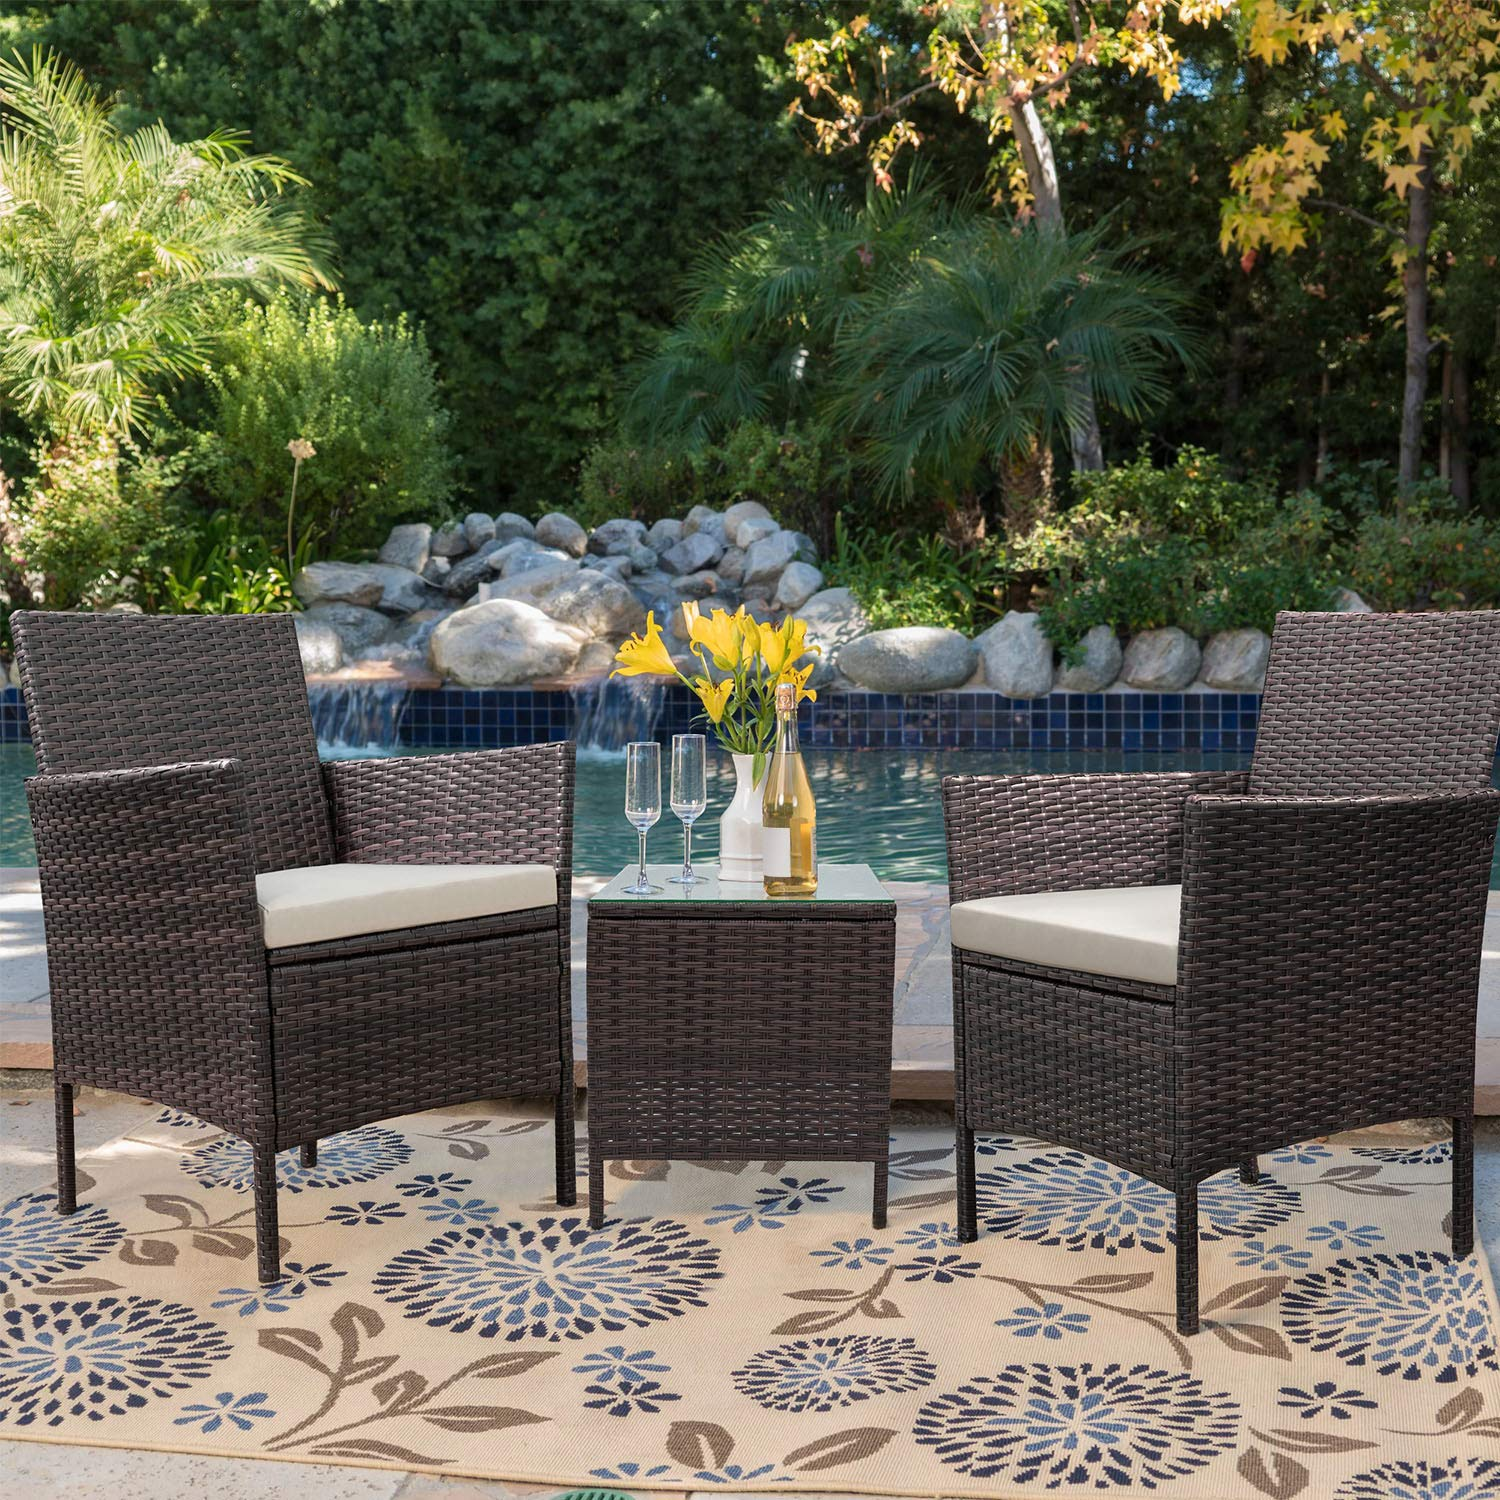 Patio Porch Furniture Sets 3 Pieces PE Rattan Wicker Chairs with Table